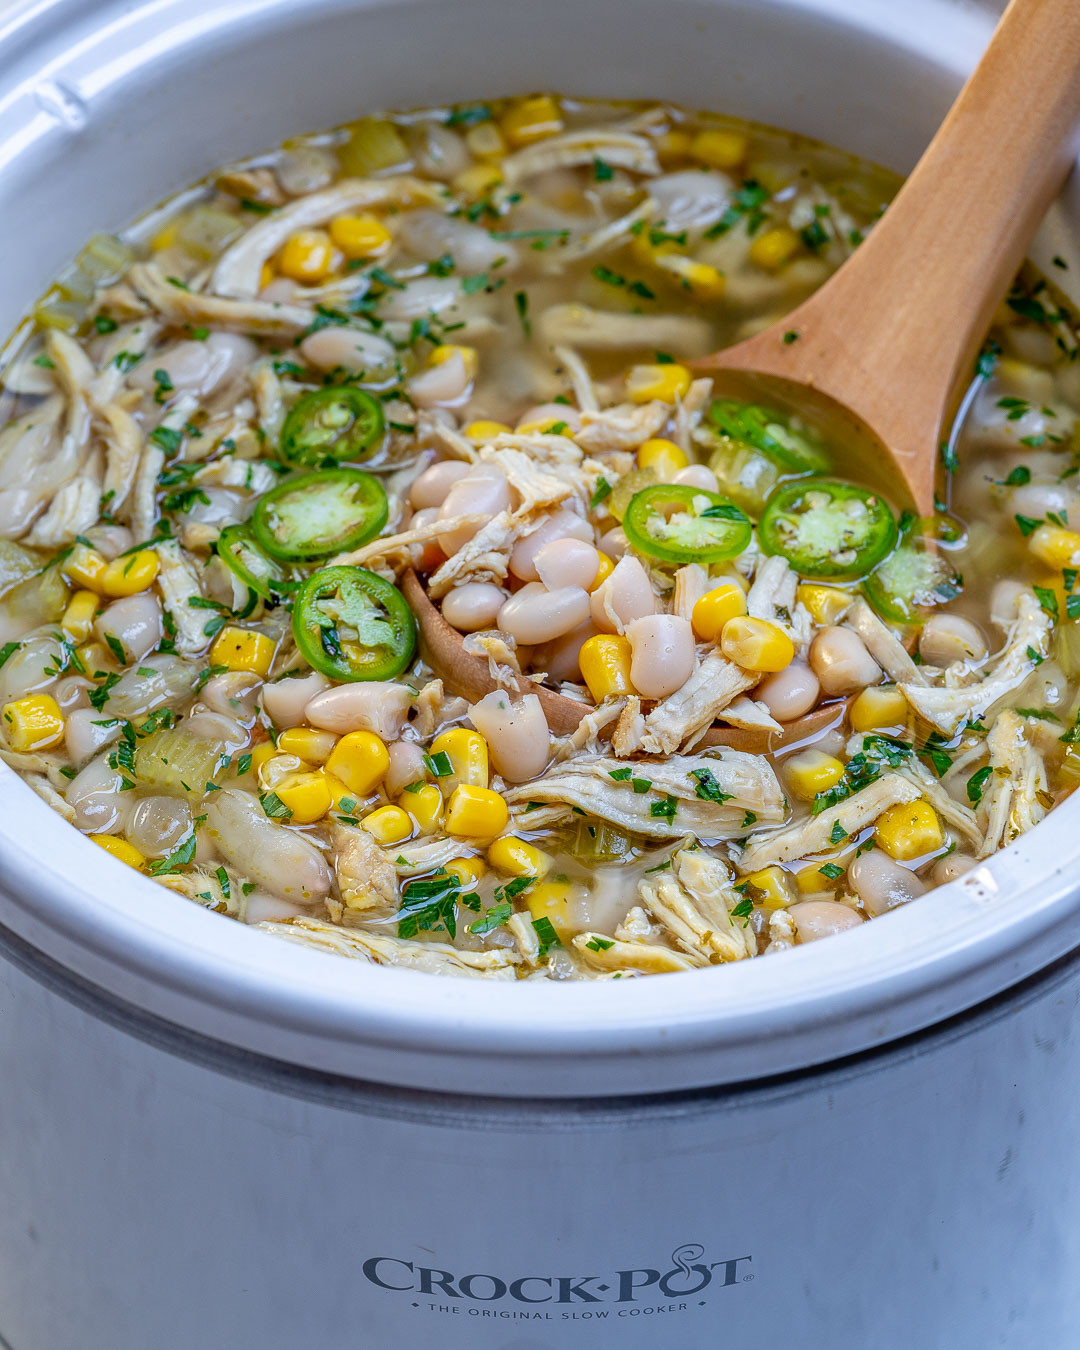 Chicken Chili Crock Pot Recipes  Crock Pot Instant Pot White Chicken Chili for Clean Eating